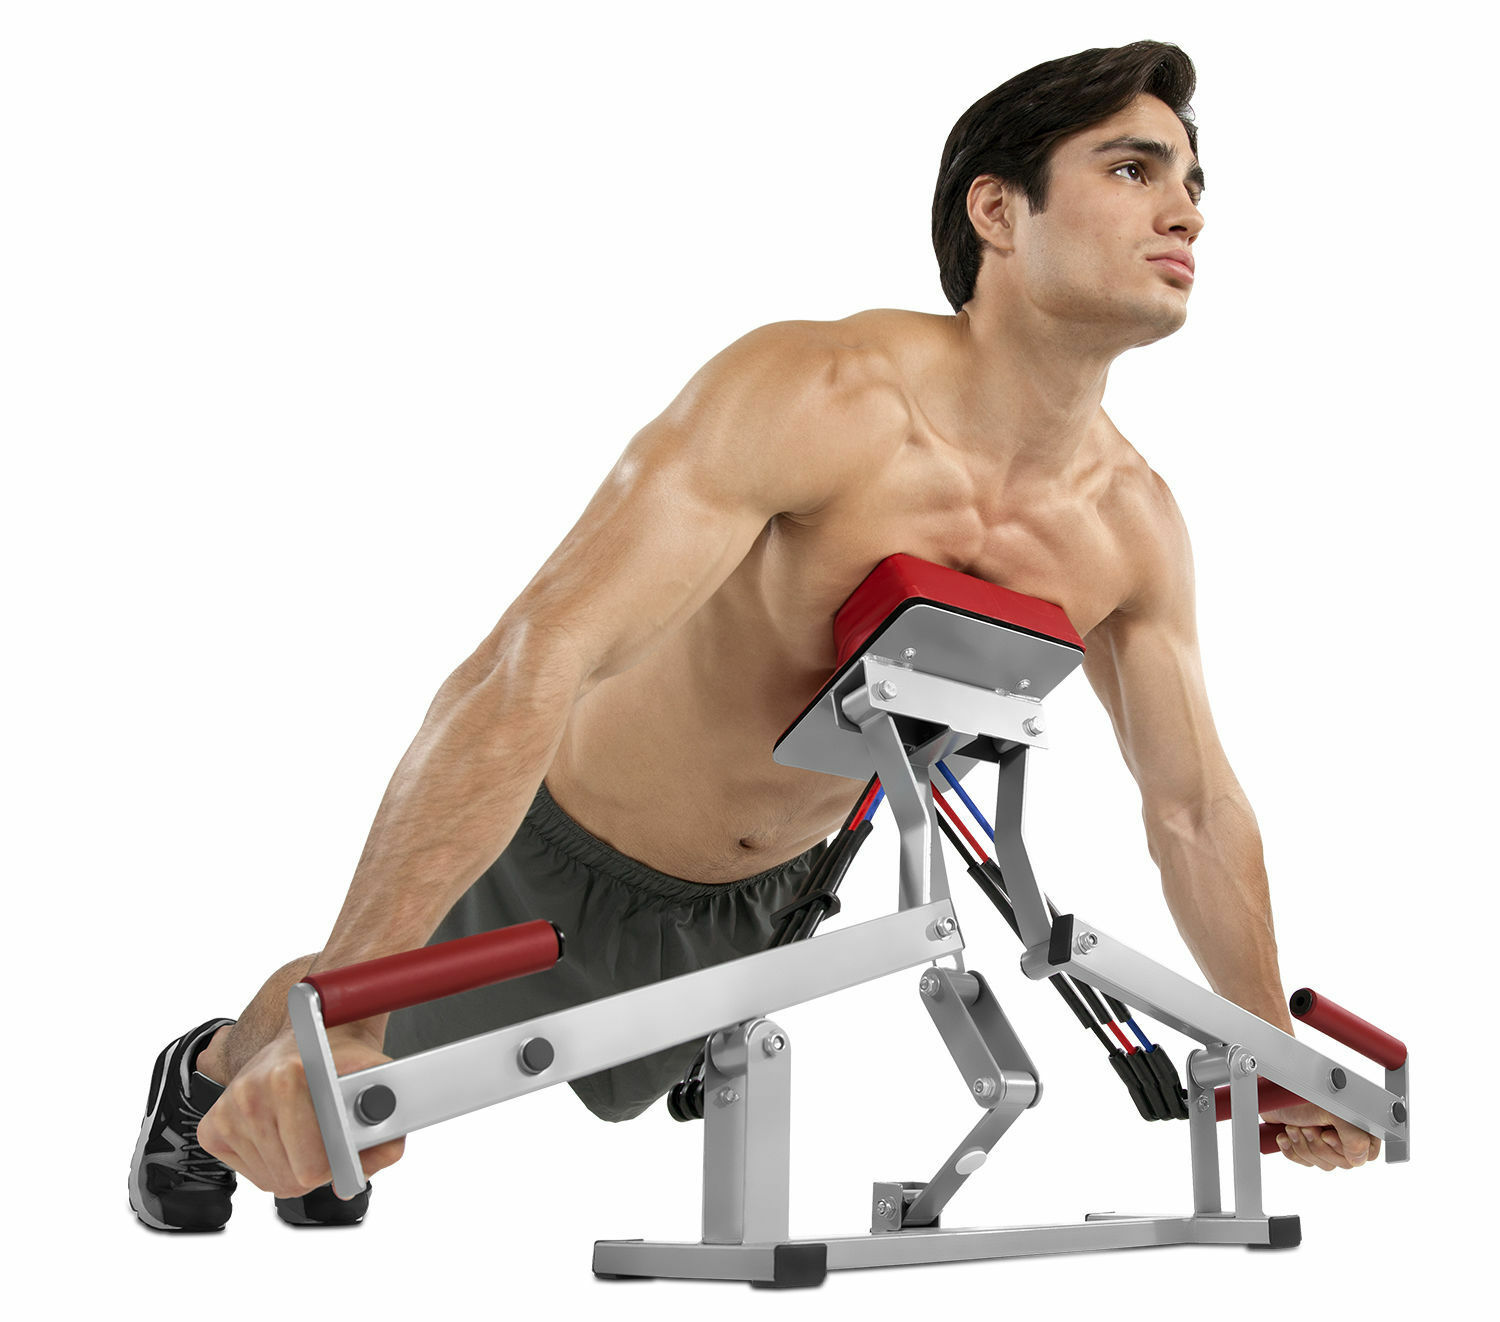 Push Up Pump - The As Seen On TV Full Body and Push Up Workout - BRAND NEW  -